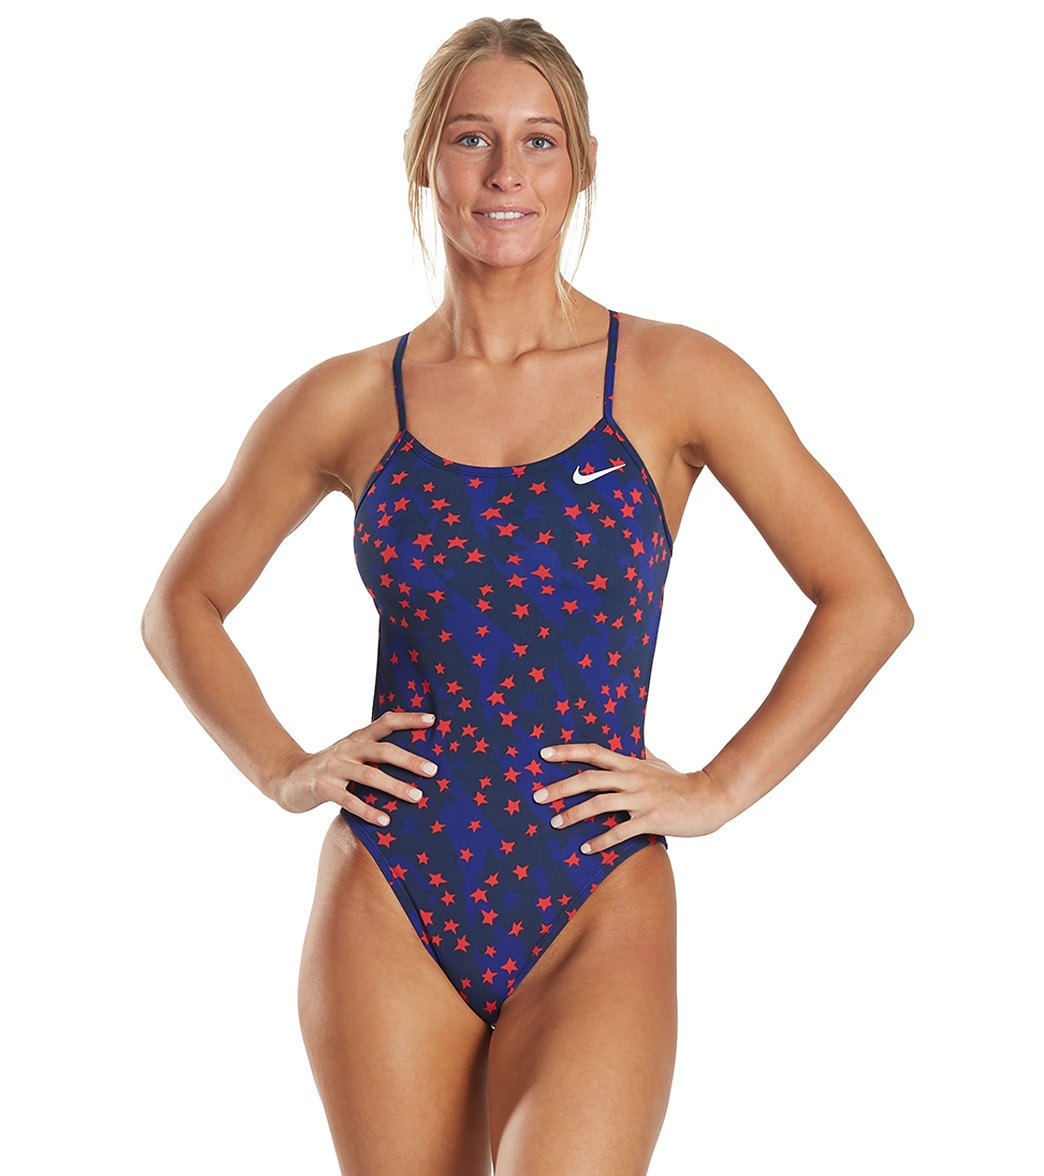 Nike Women's Hydrastrong Print Cut Out Tank One Piece Swimsuit